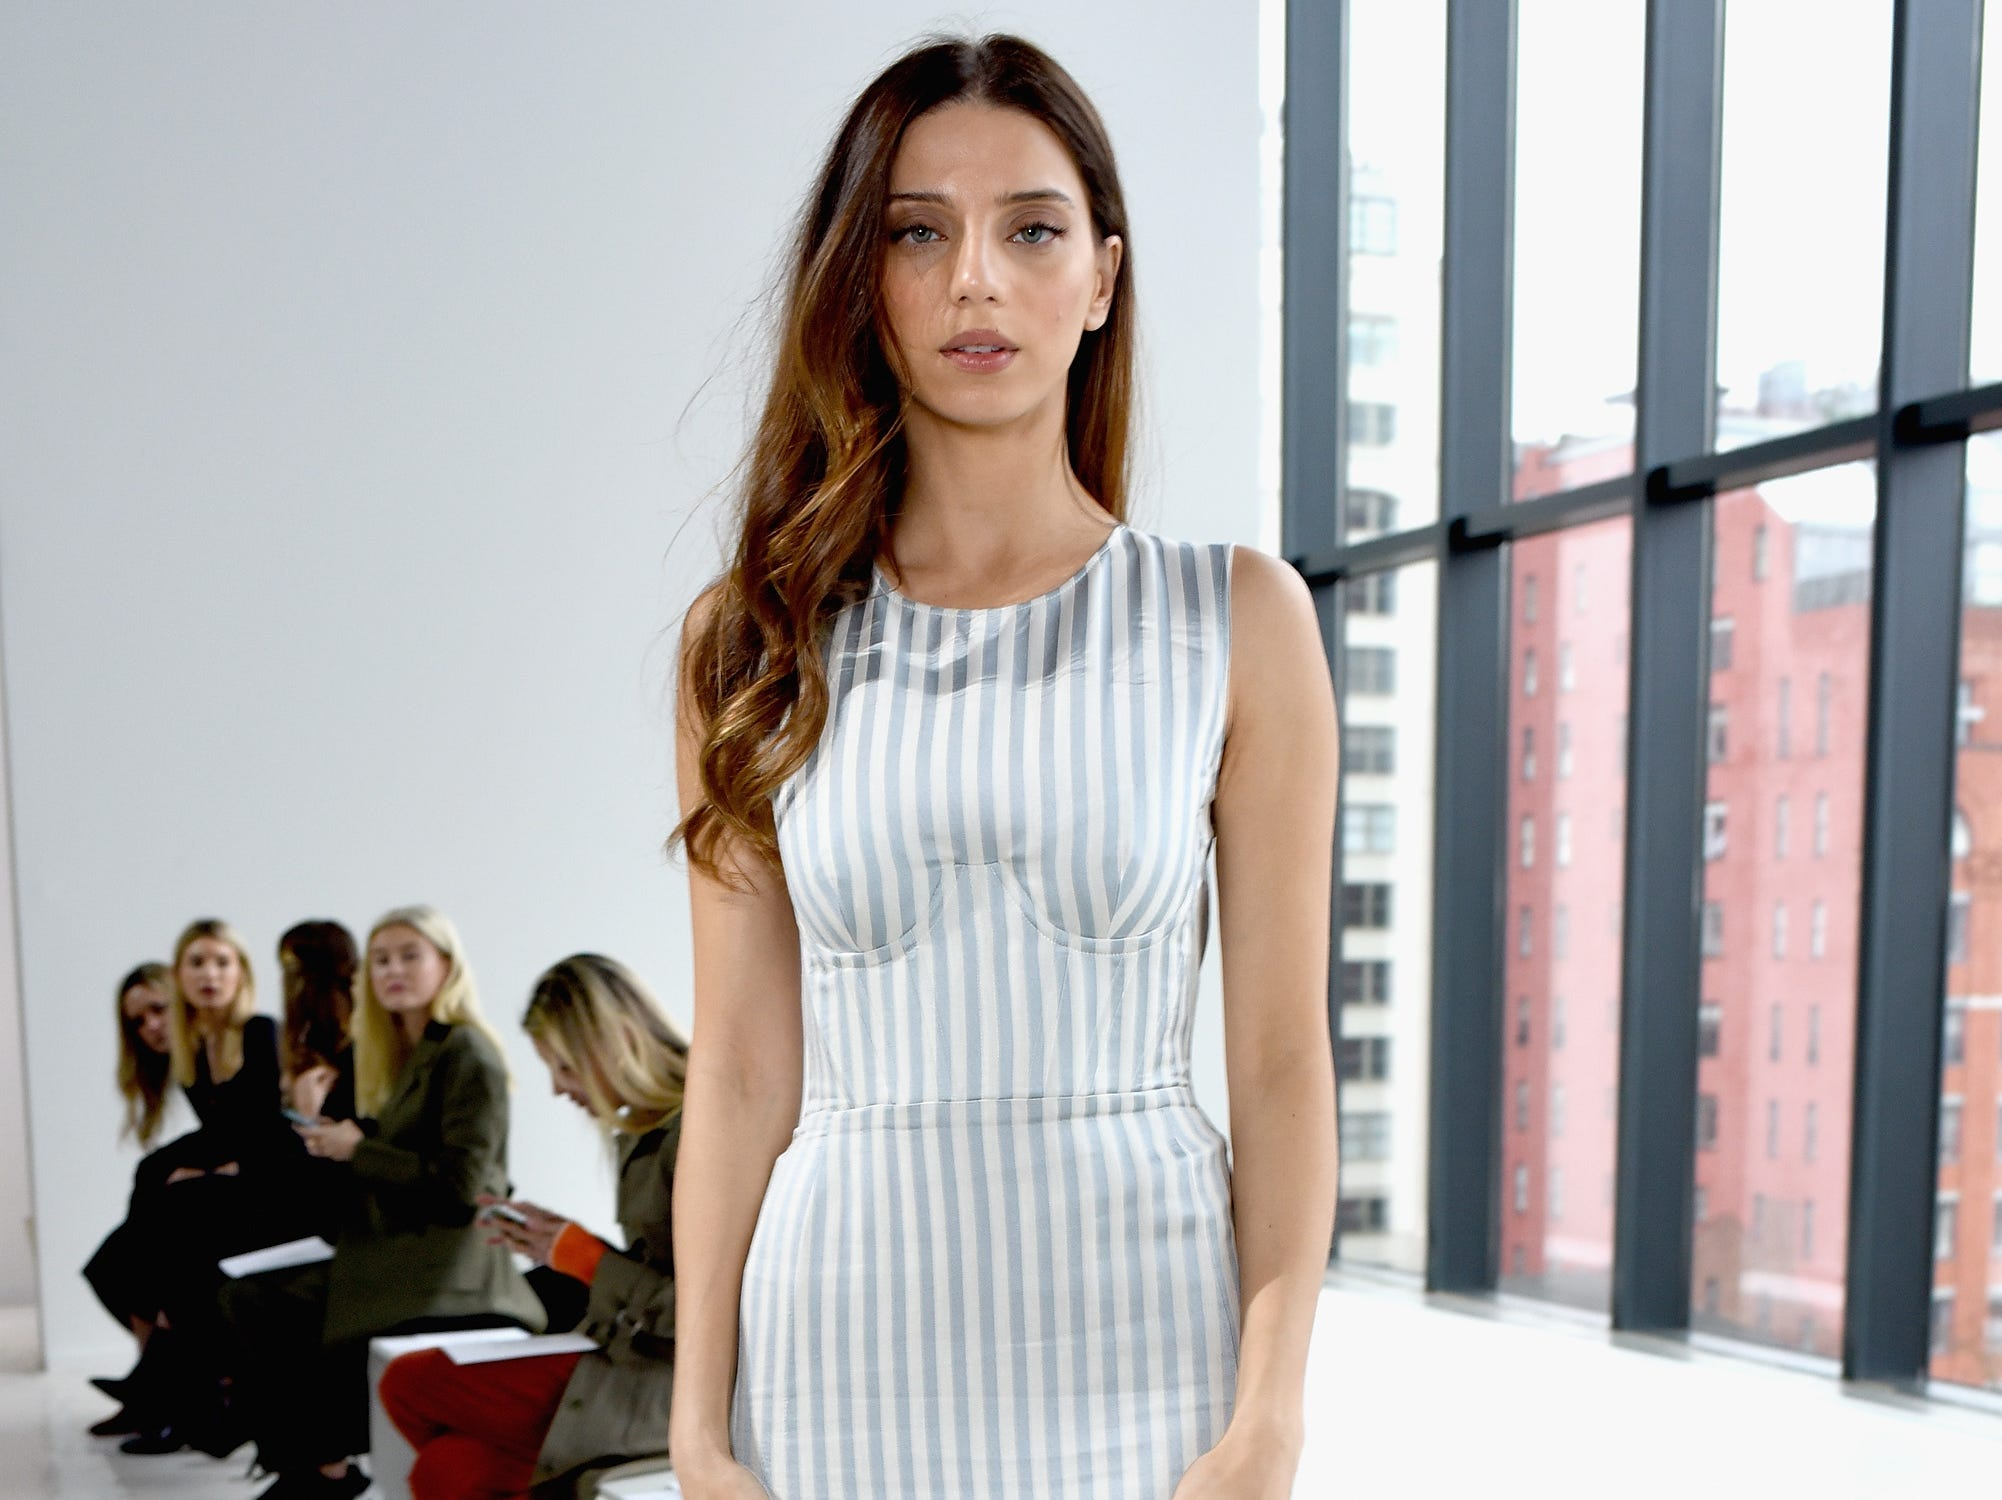 New York Fashion WEek, Fall 2019 continued Thursday with actress Angela Sarafyan attending the Brock Collection show.